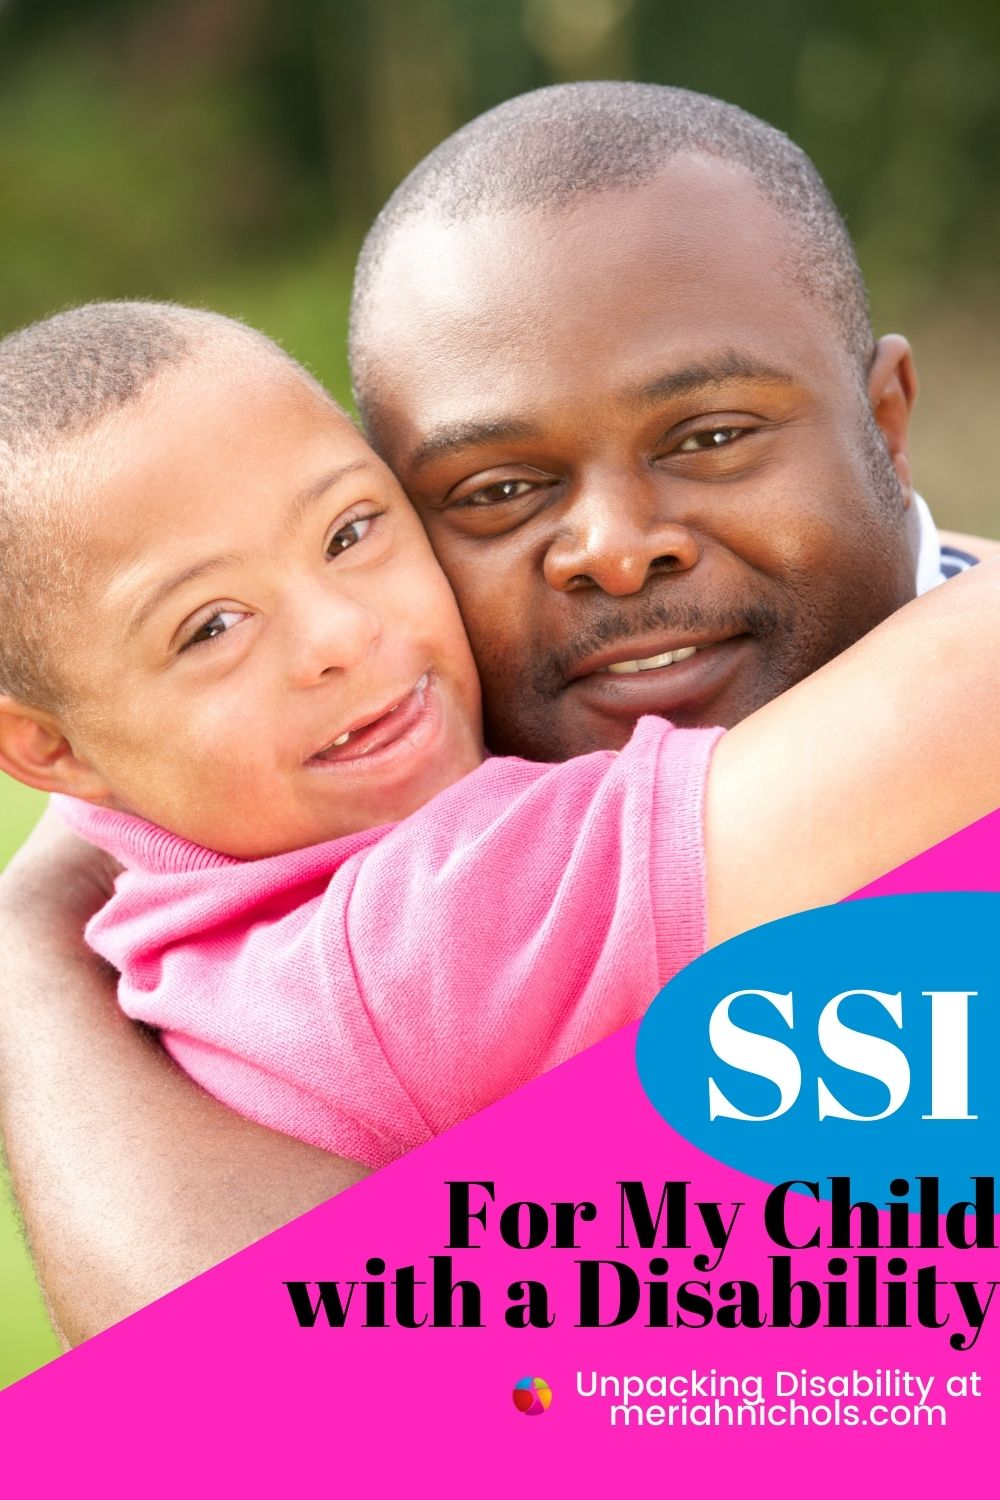 image of a black man holding a black boy with Down syndrome. they are smiling and their arms are wrapped around one another. Both have short hair, bright eyes. The boy has lighter skin than the man.